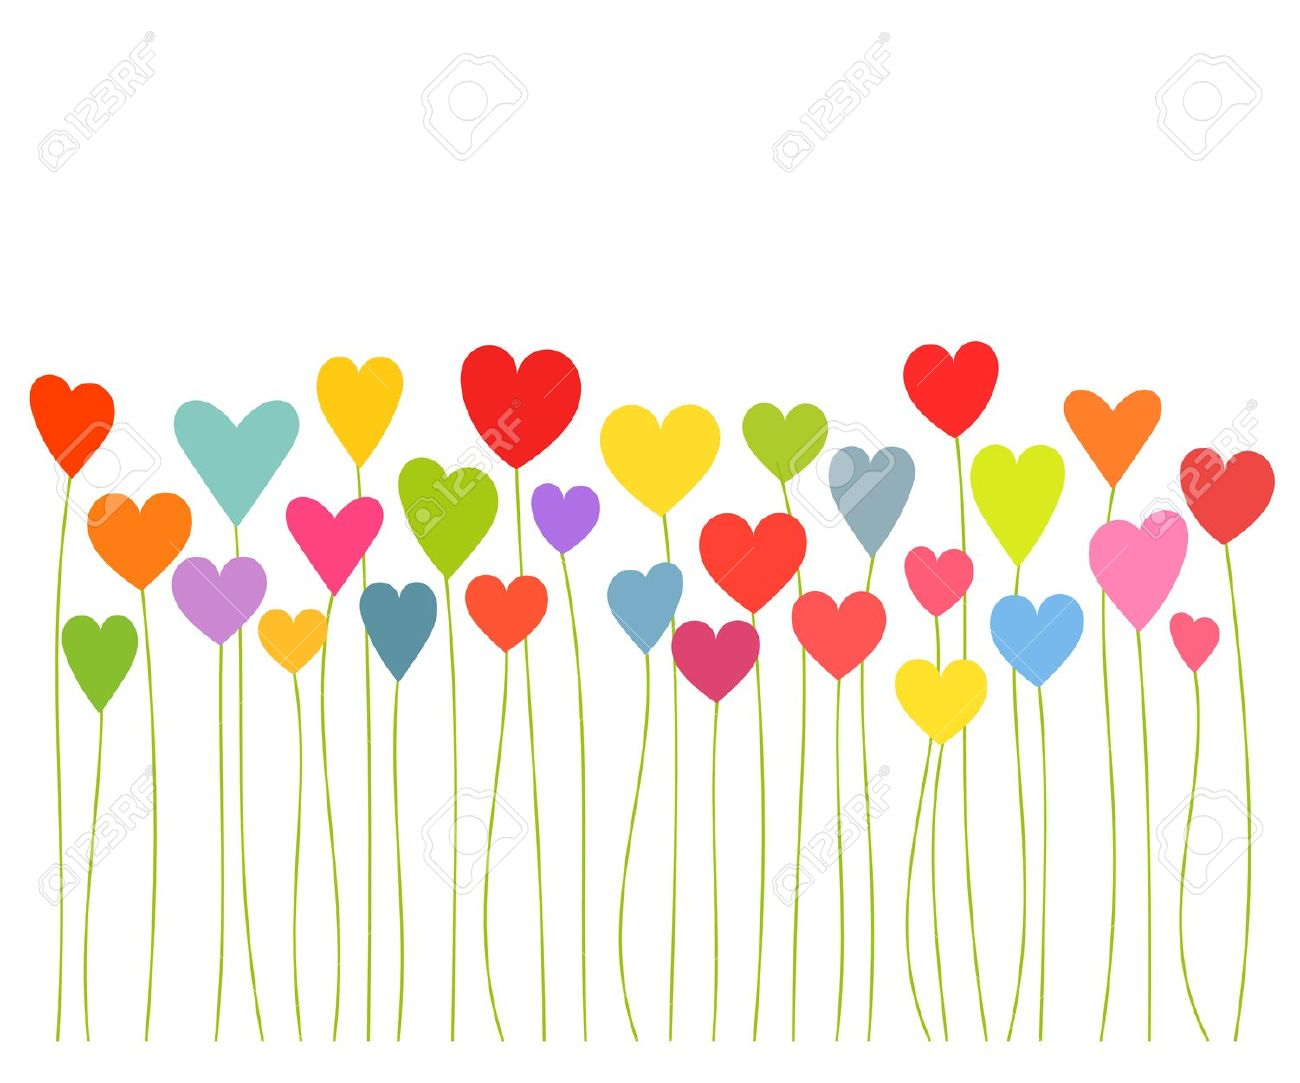 flower heart clipart at getdrawings com free for personal use rh getdrawings com  free clipart hearts and flowers